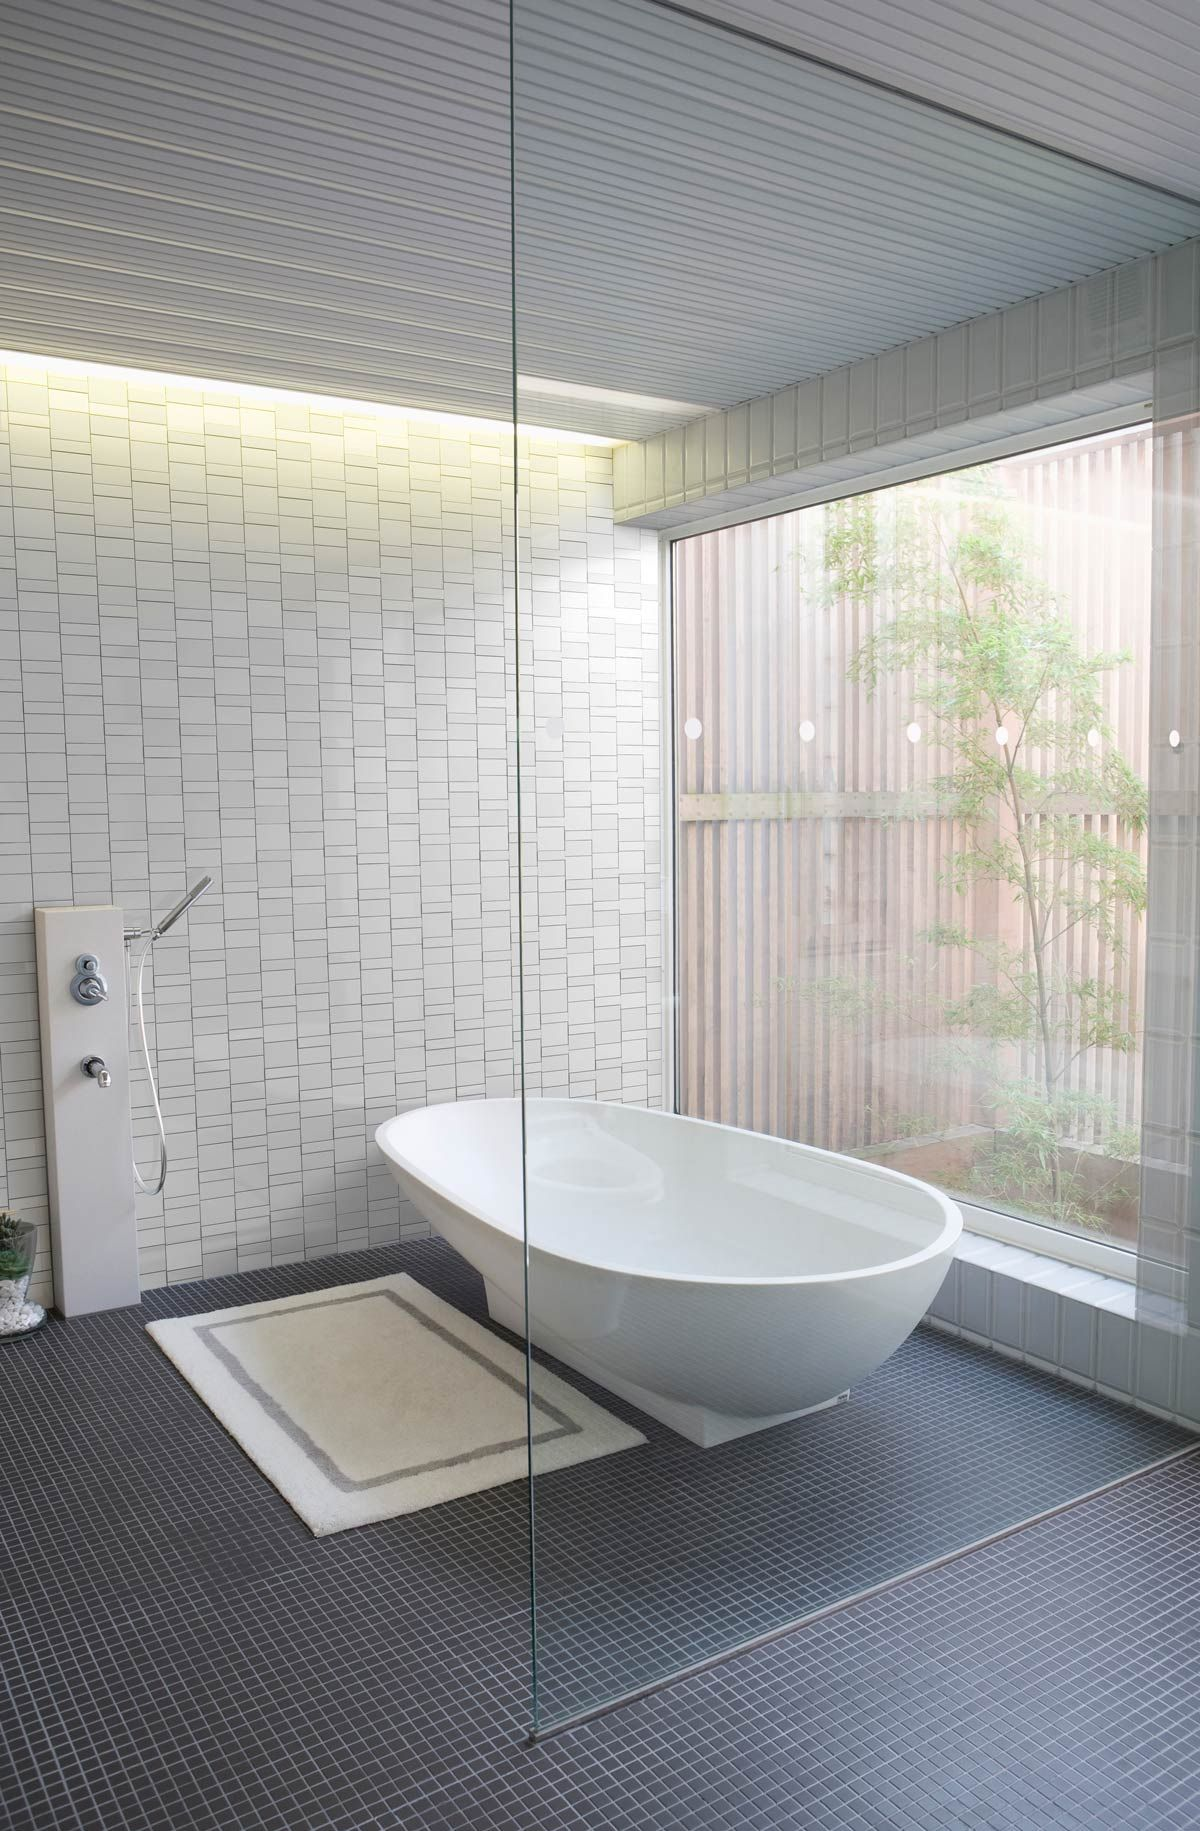 Inax | Format | White (matte) Mosaic Tiles from Stone Tile Inc ...